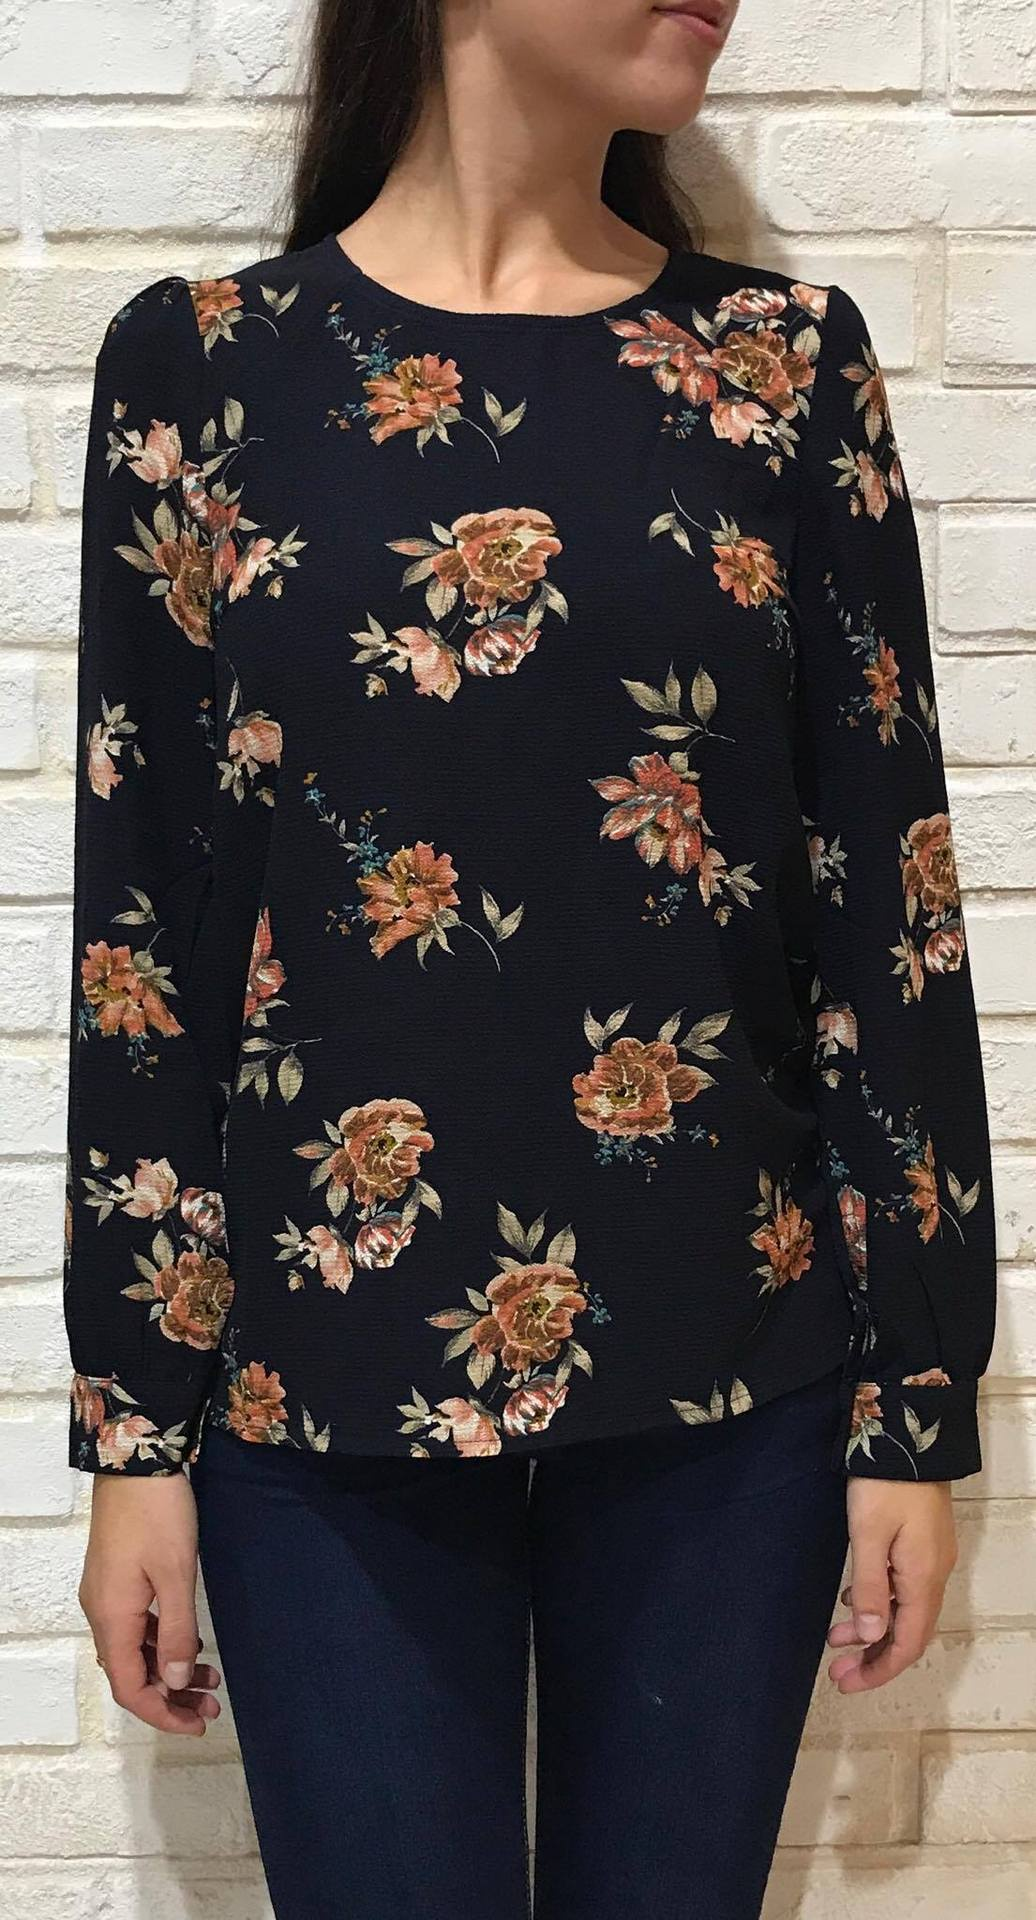 AUTUMN PRINT BLOUSE / A3174 Image